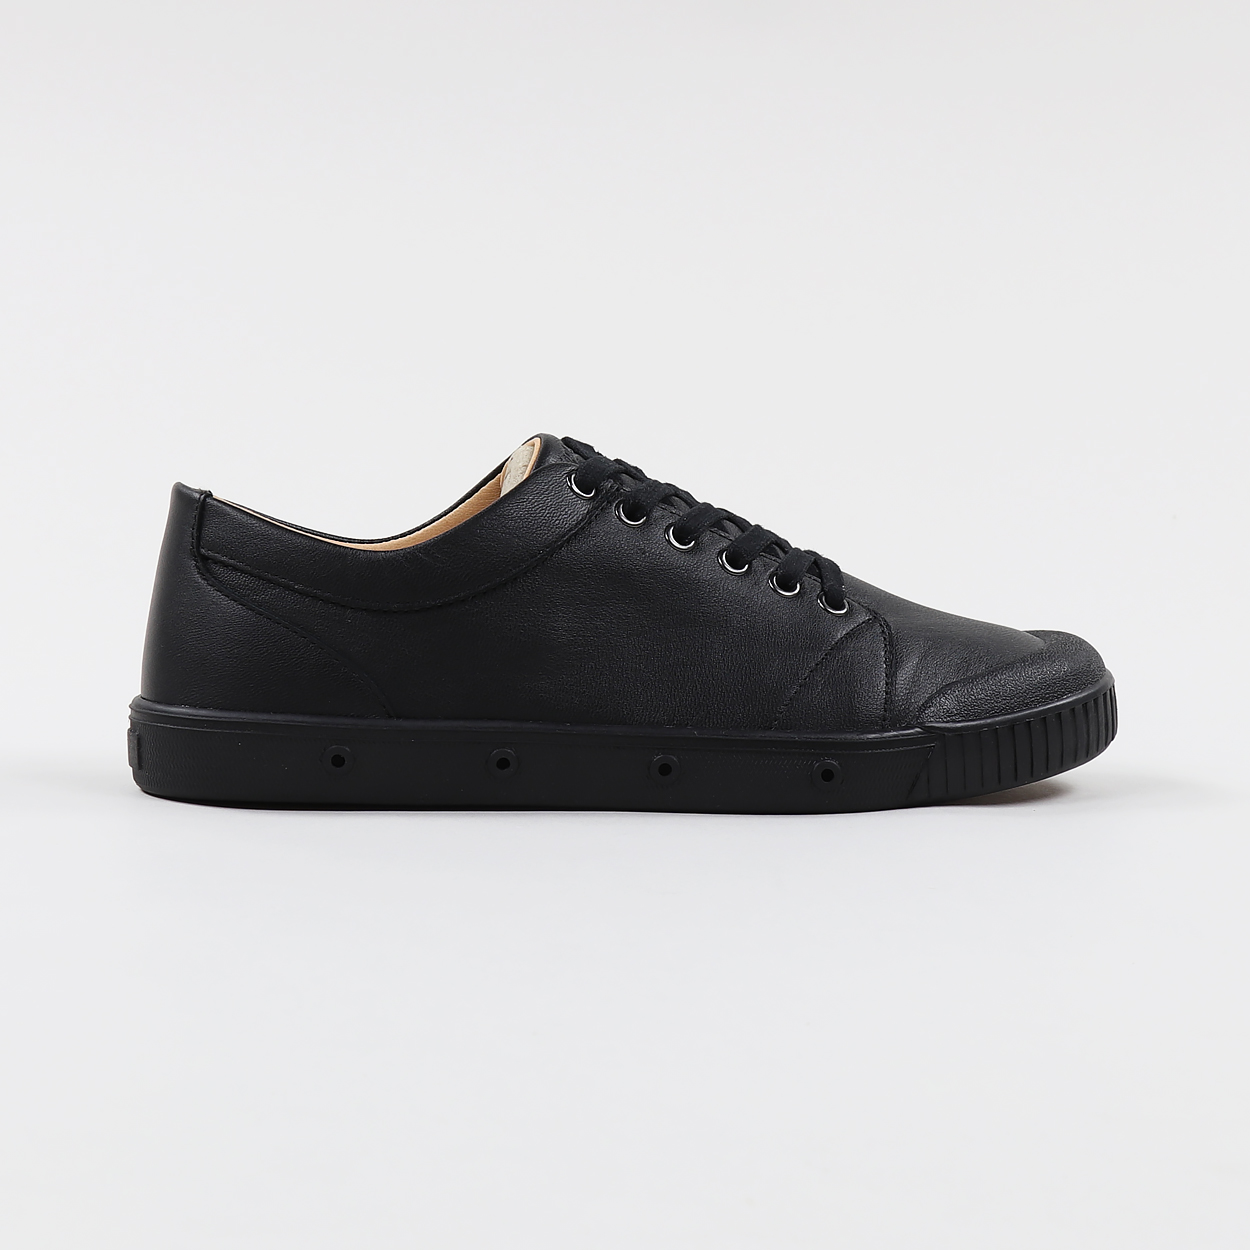 Spring Court G2 Goatskin Leather Shoes